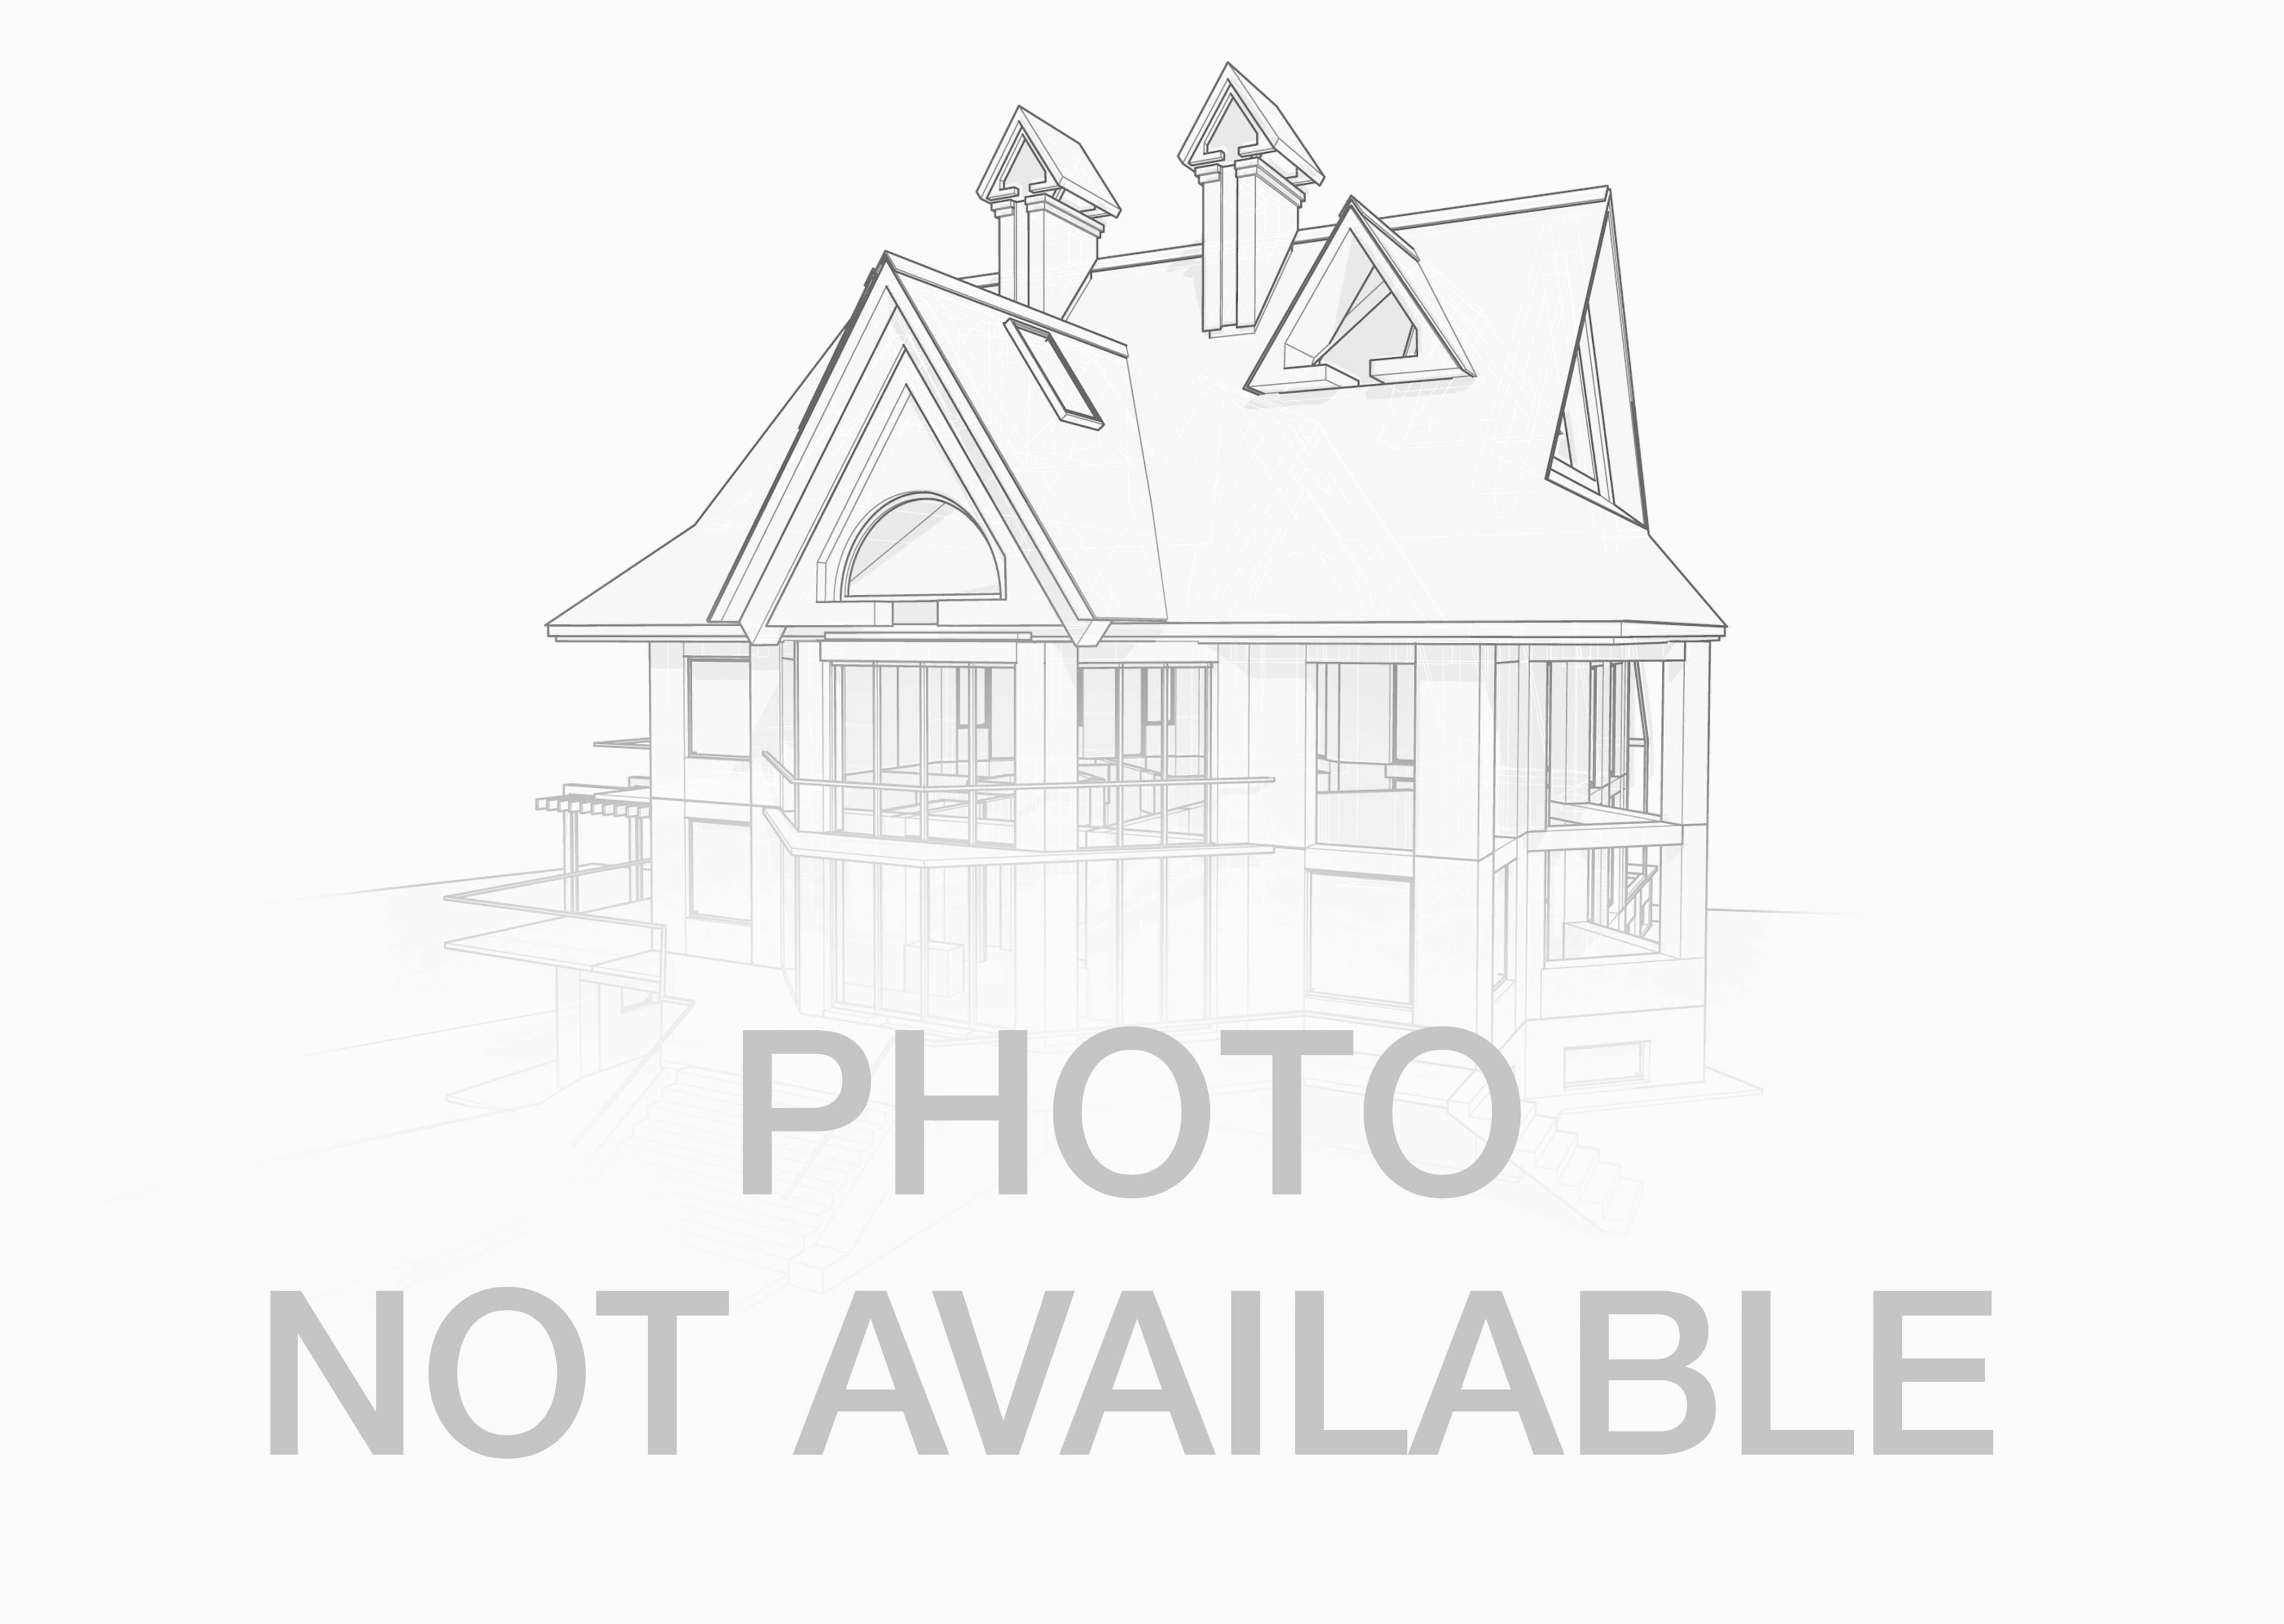 8770 N Main St Helen Ga 30545 Mls Id 8294707 Commercial